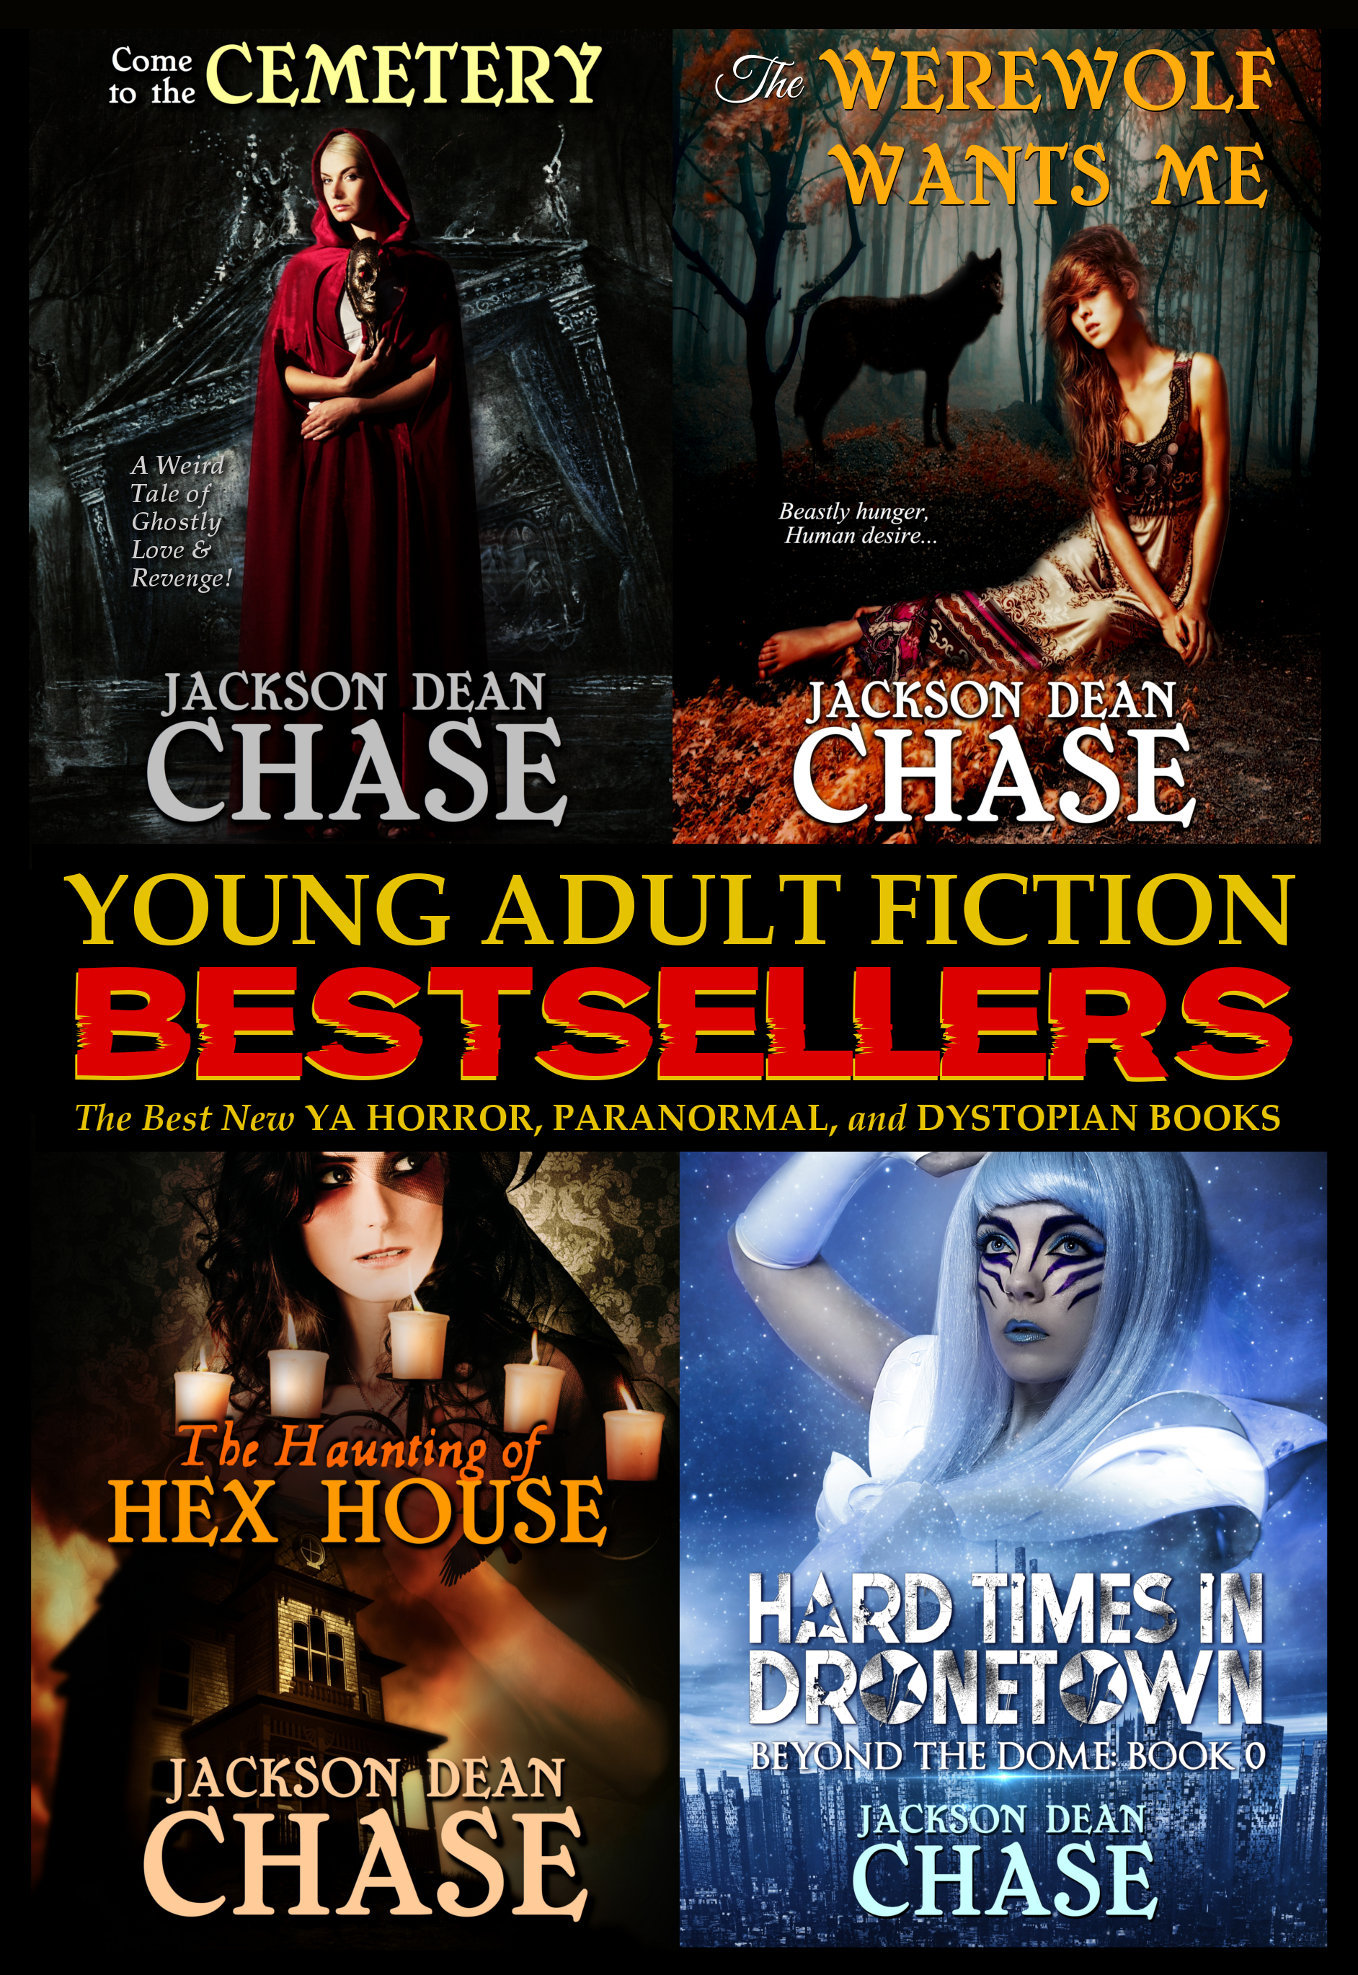 Young Adult Fiction Best Sellers: The Best New YA Horror, Paranormal, and Dystopian Books